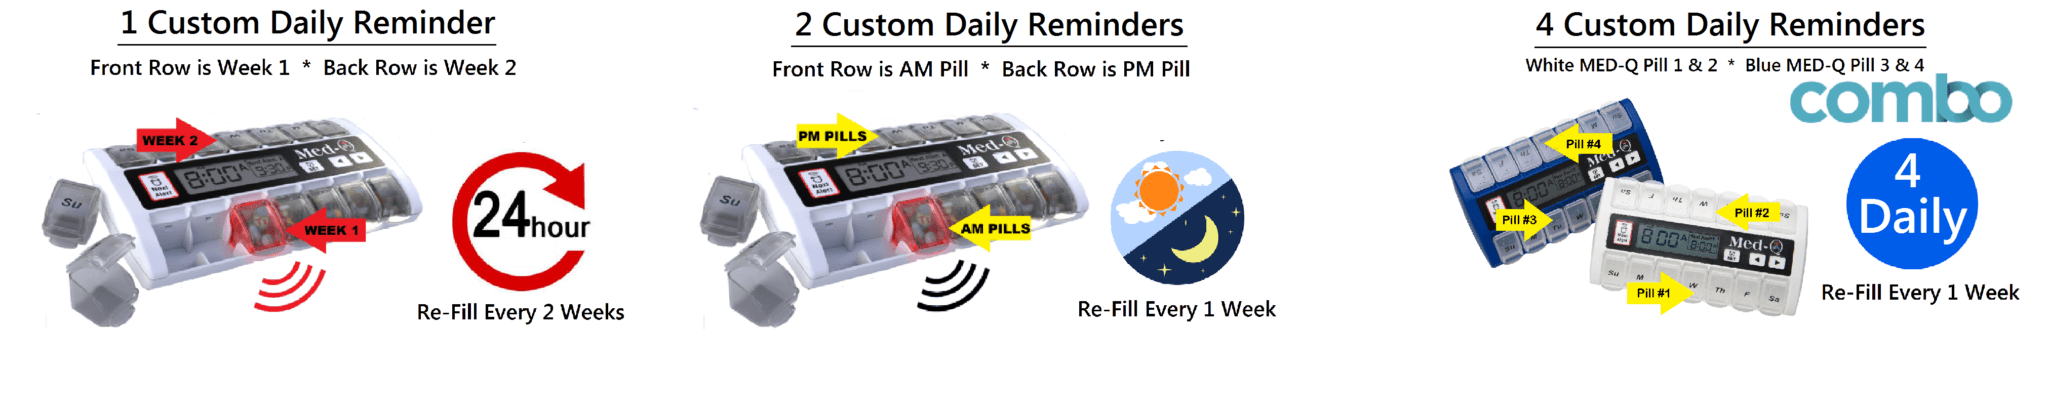 smart pillboxes